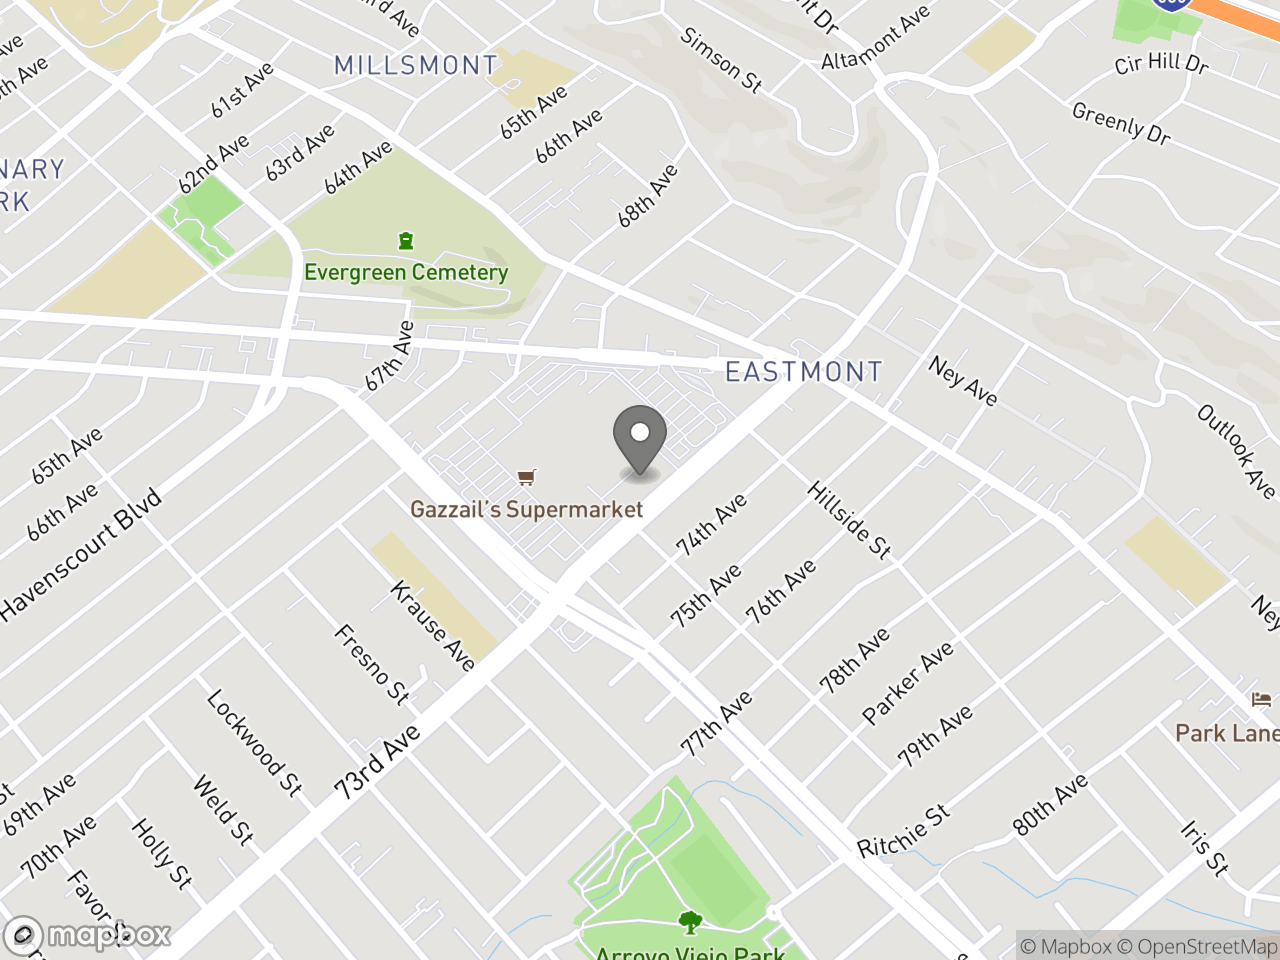 Map location for CPAB Meeting - September 4, 2019, located at Eastmont Police Station in Oakland, CA 94605